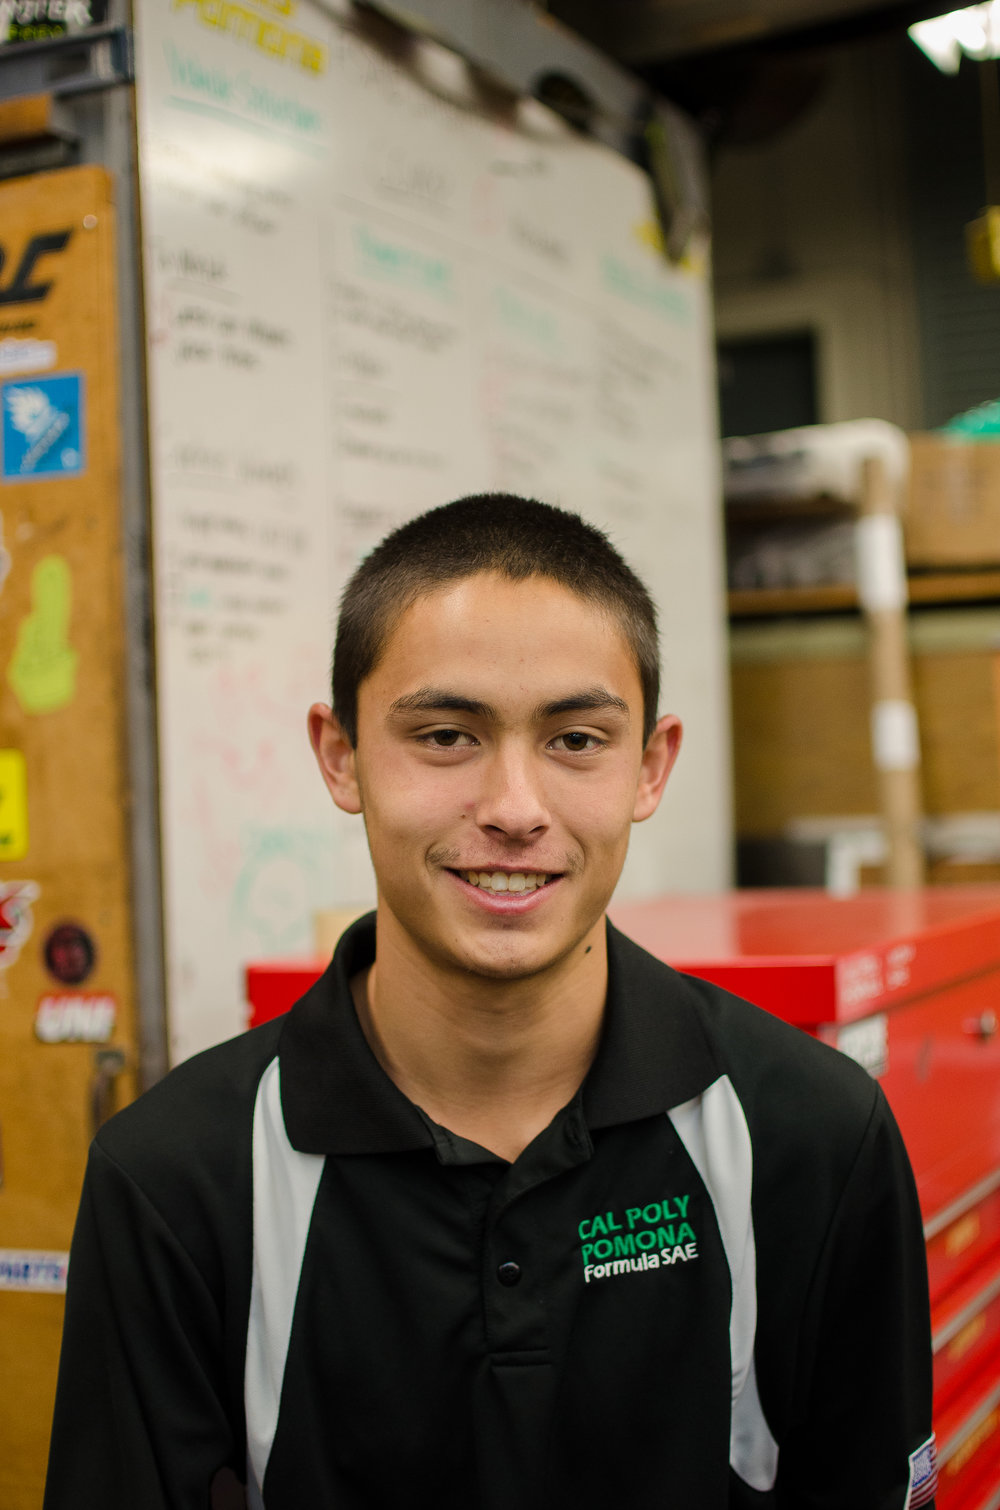 Nick Curran - Steering/Brakes Captain nscurran@cpp.edu